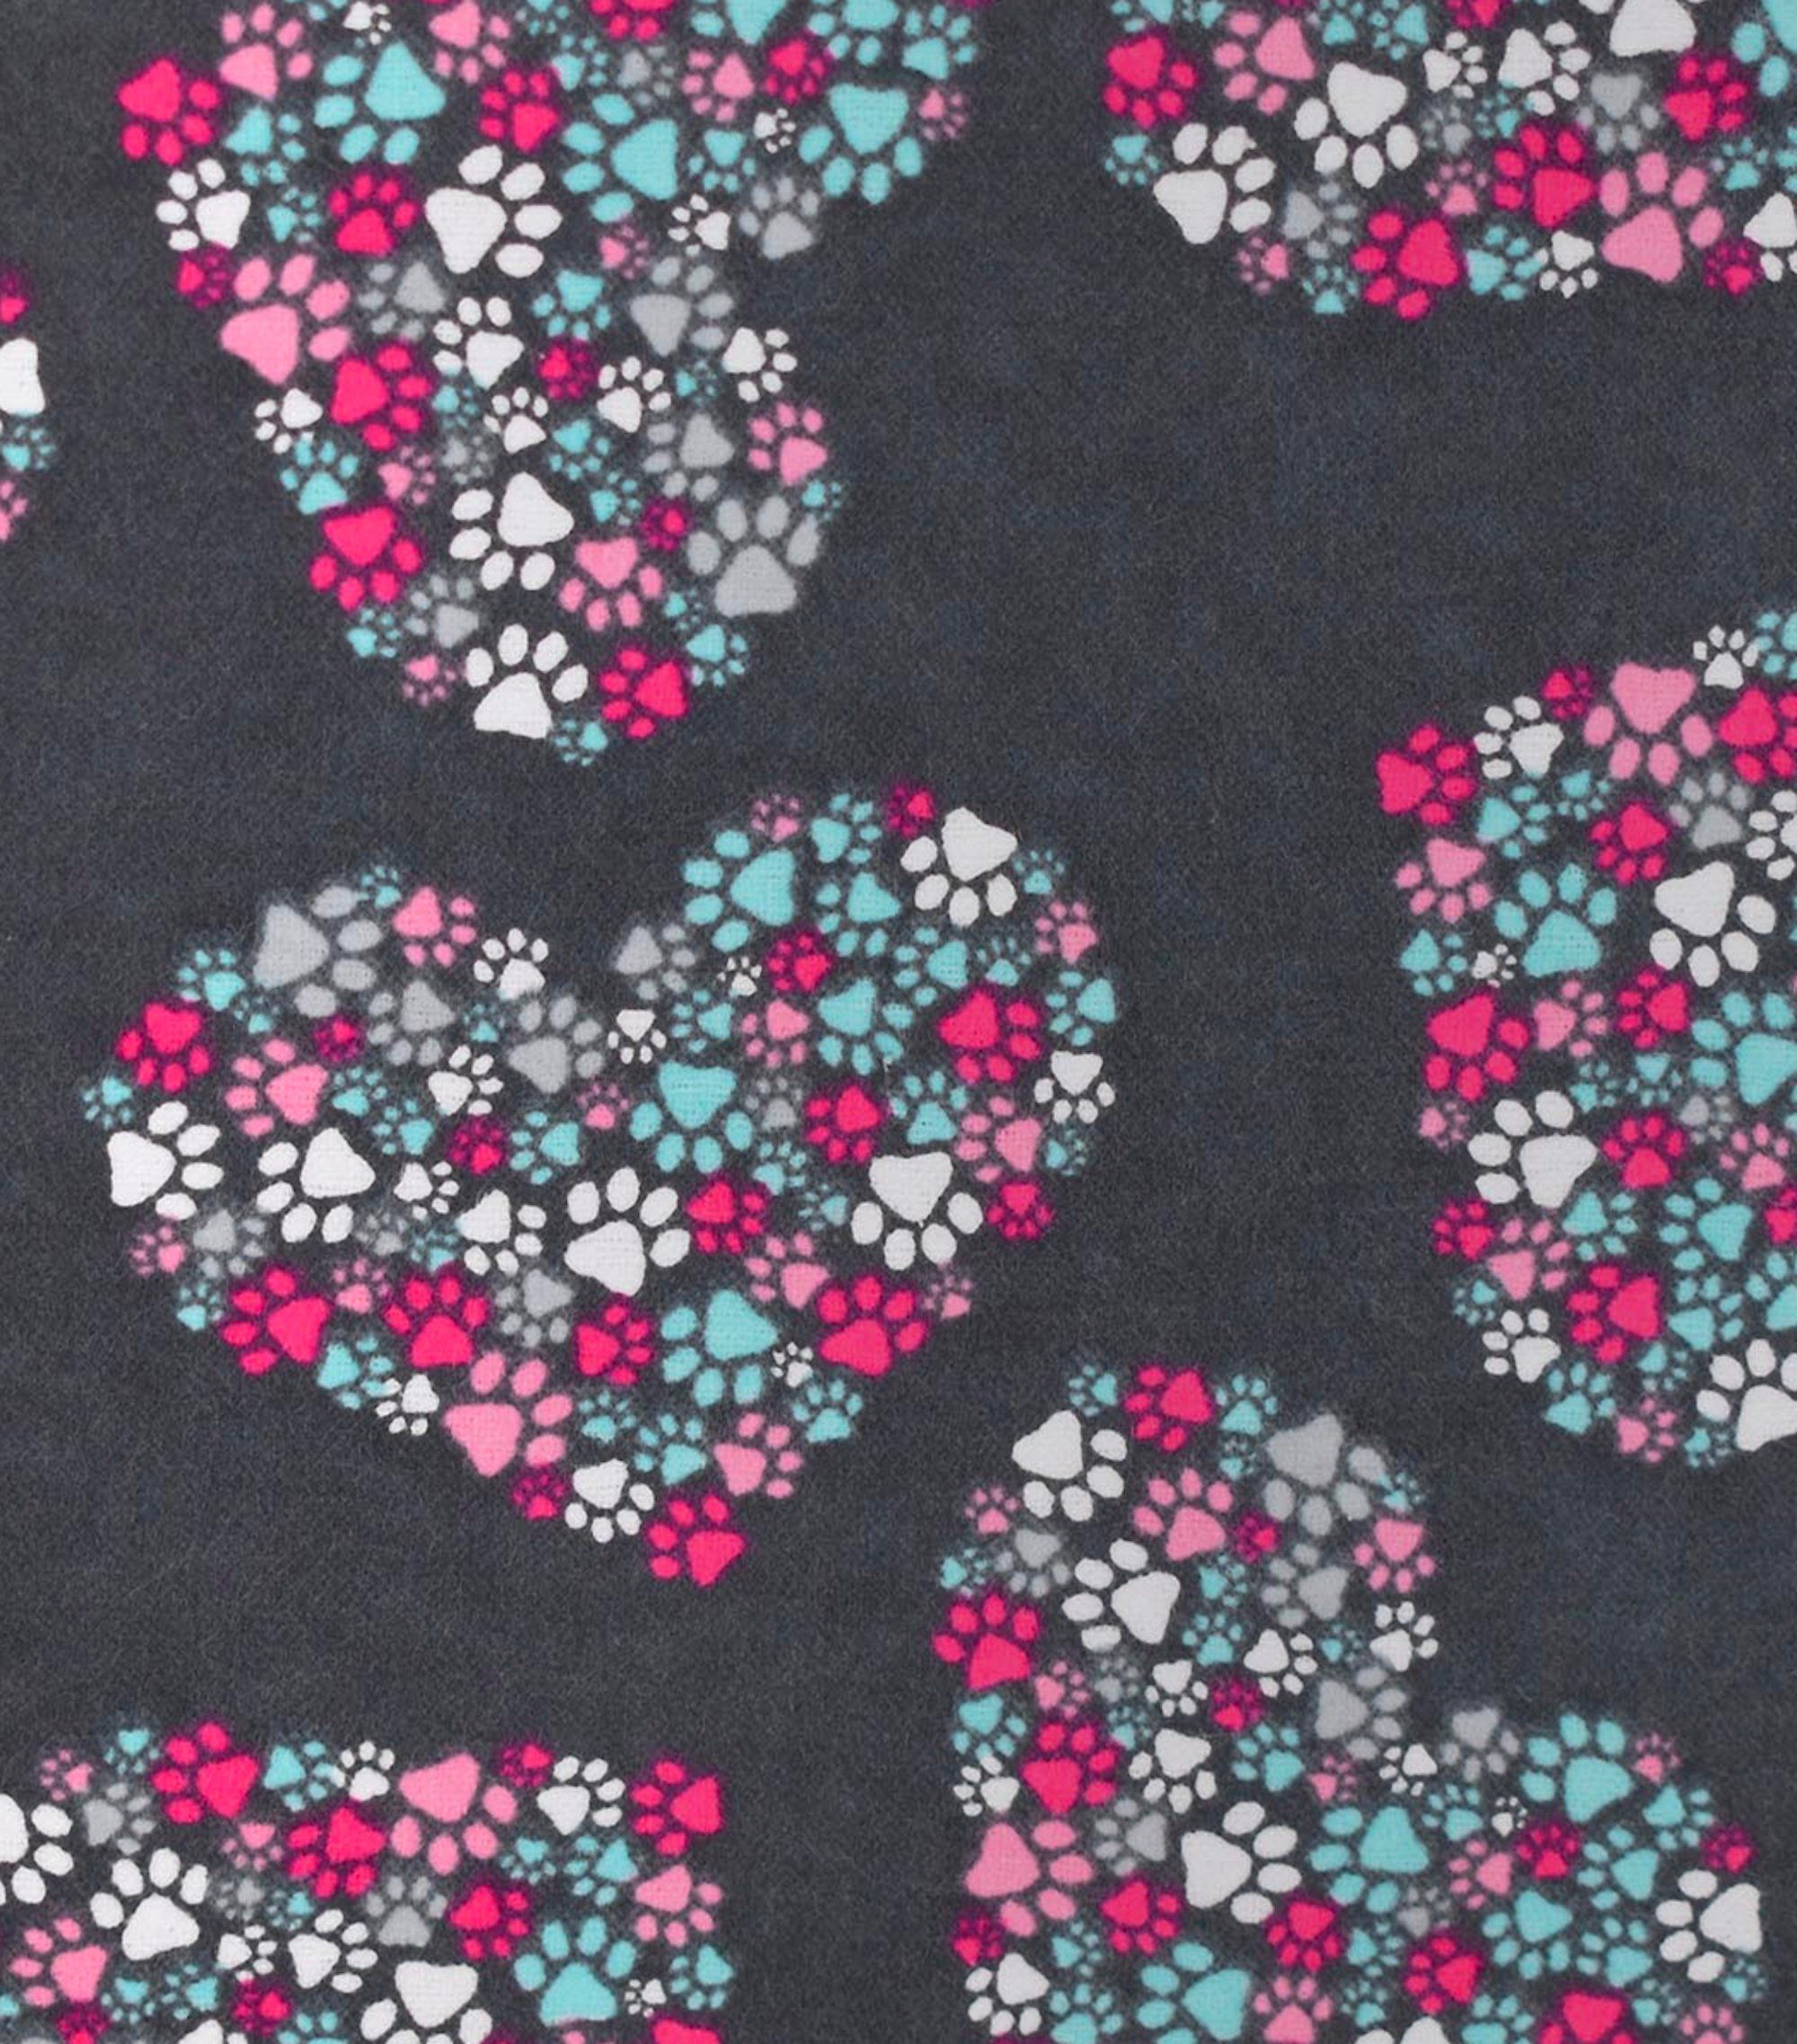 Paw Hearts Fabric By The Yard 100 Cotton Flannel Fabric Etsy Snuggle Fabric Flannel Fabric Fabric Hearts